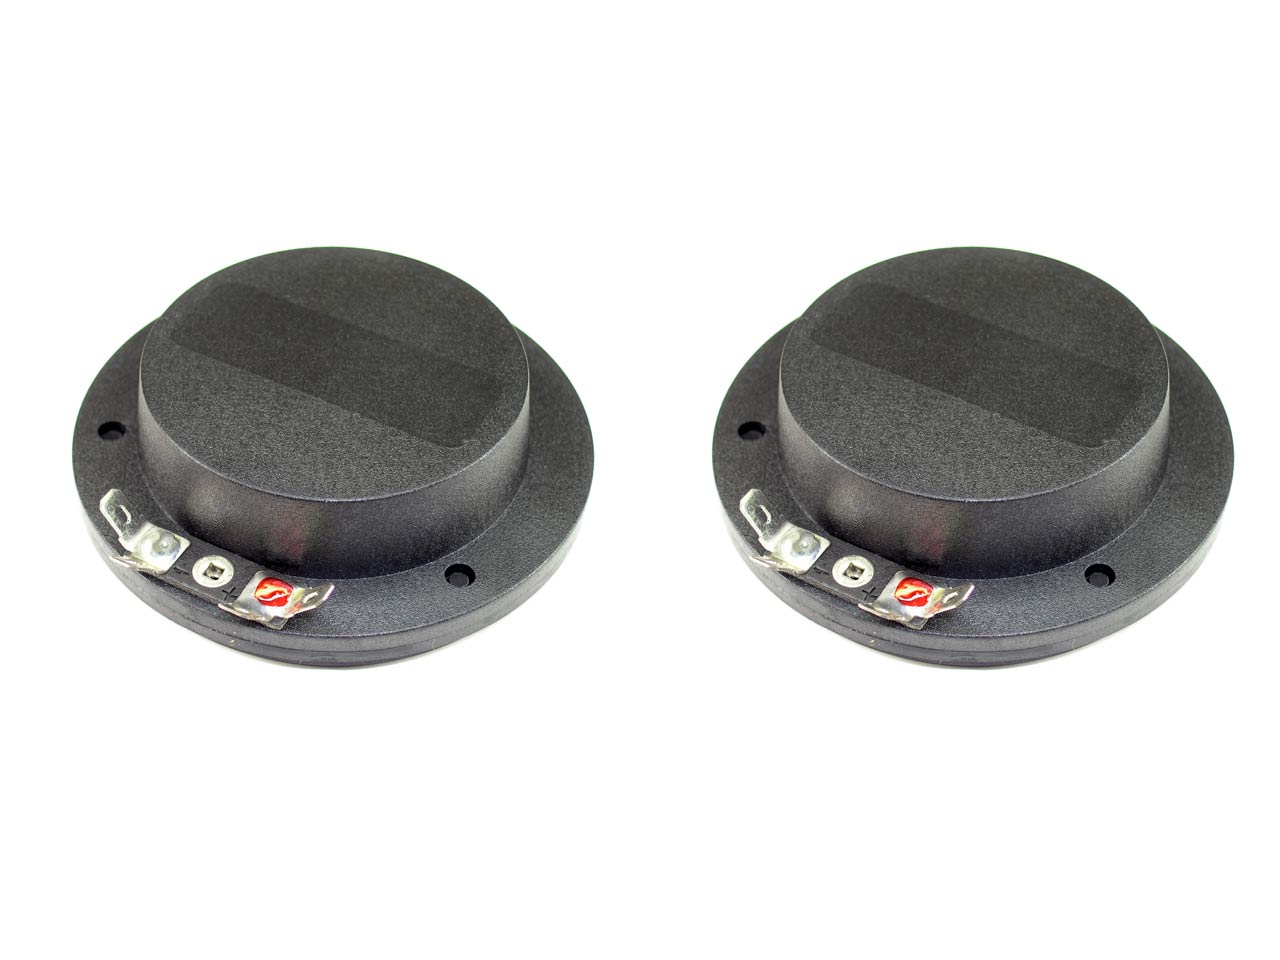 SS Audio Diaphragm for Yamaha JAY-2060, JAY2080 Horn Driver, 8 Ohm, D-101AFT-8 (2 PACK)